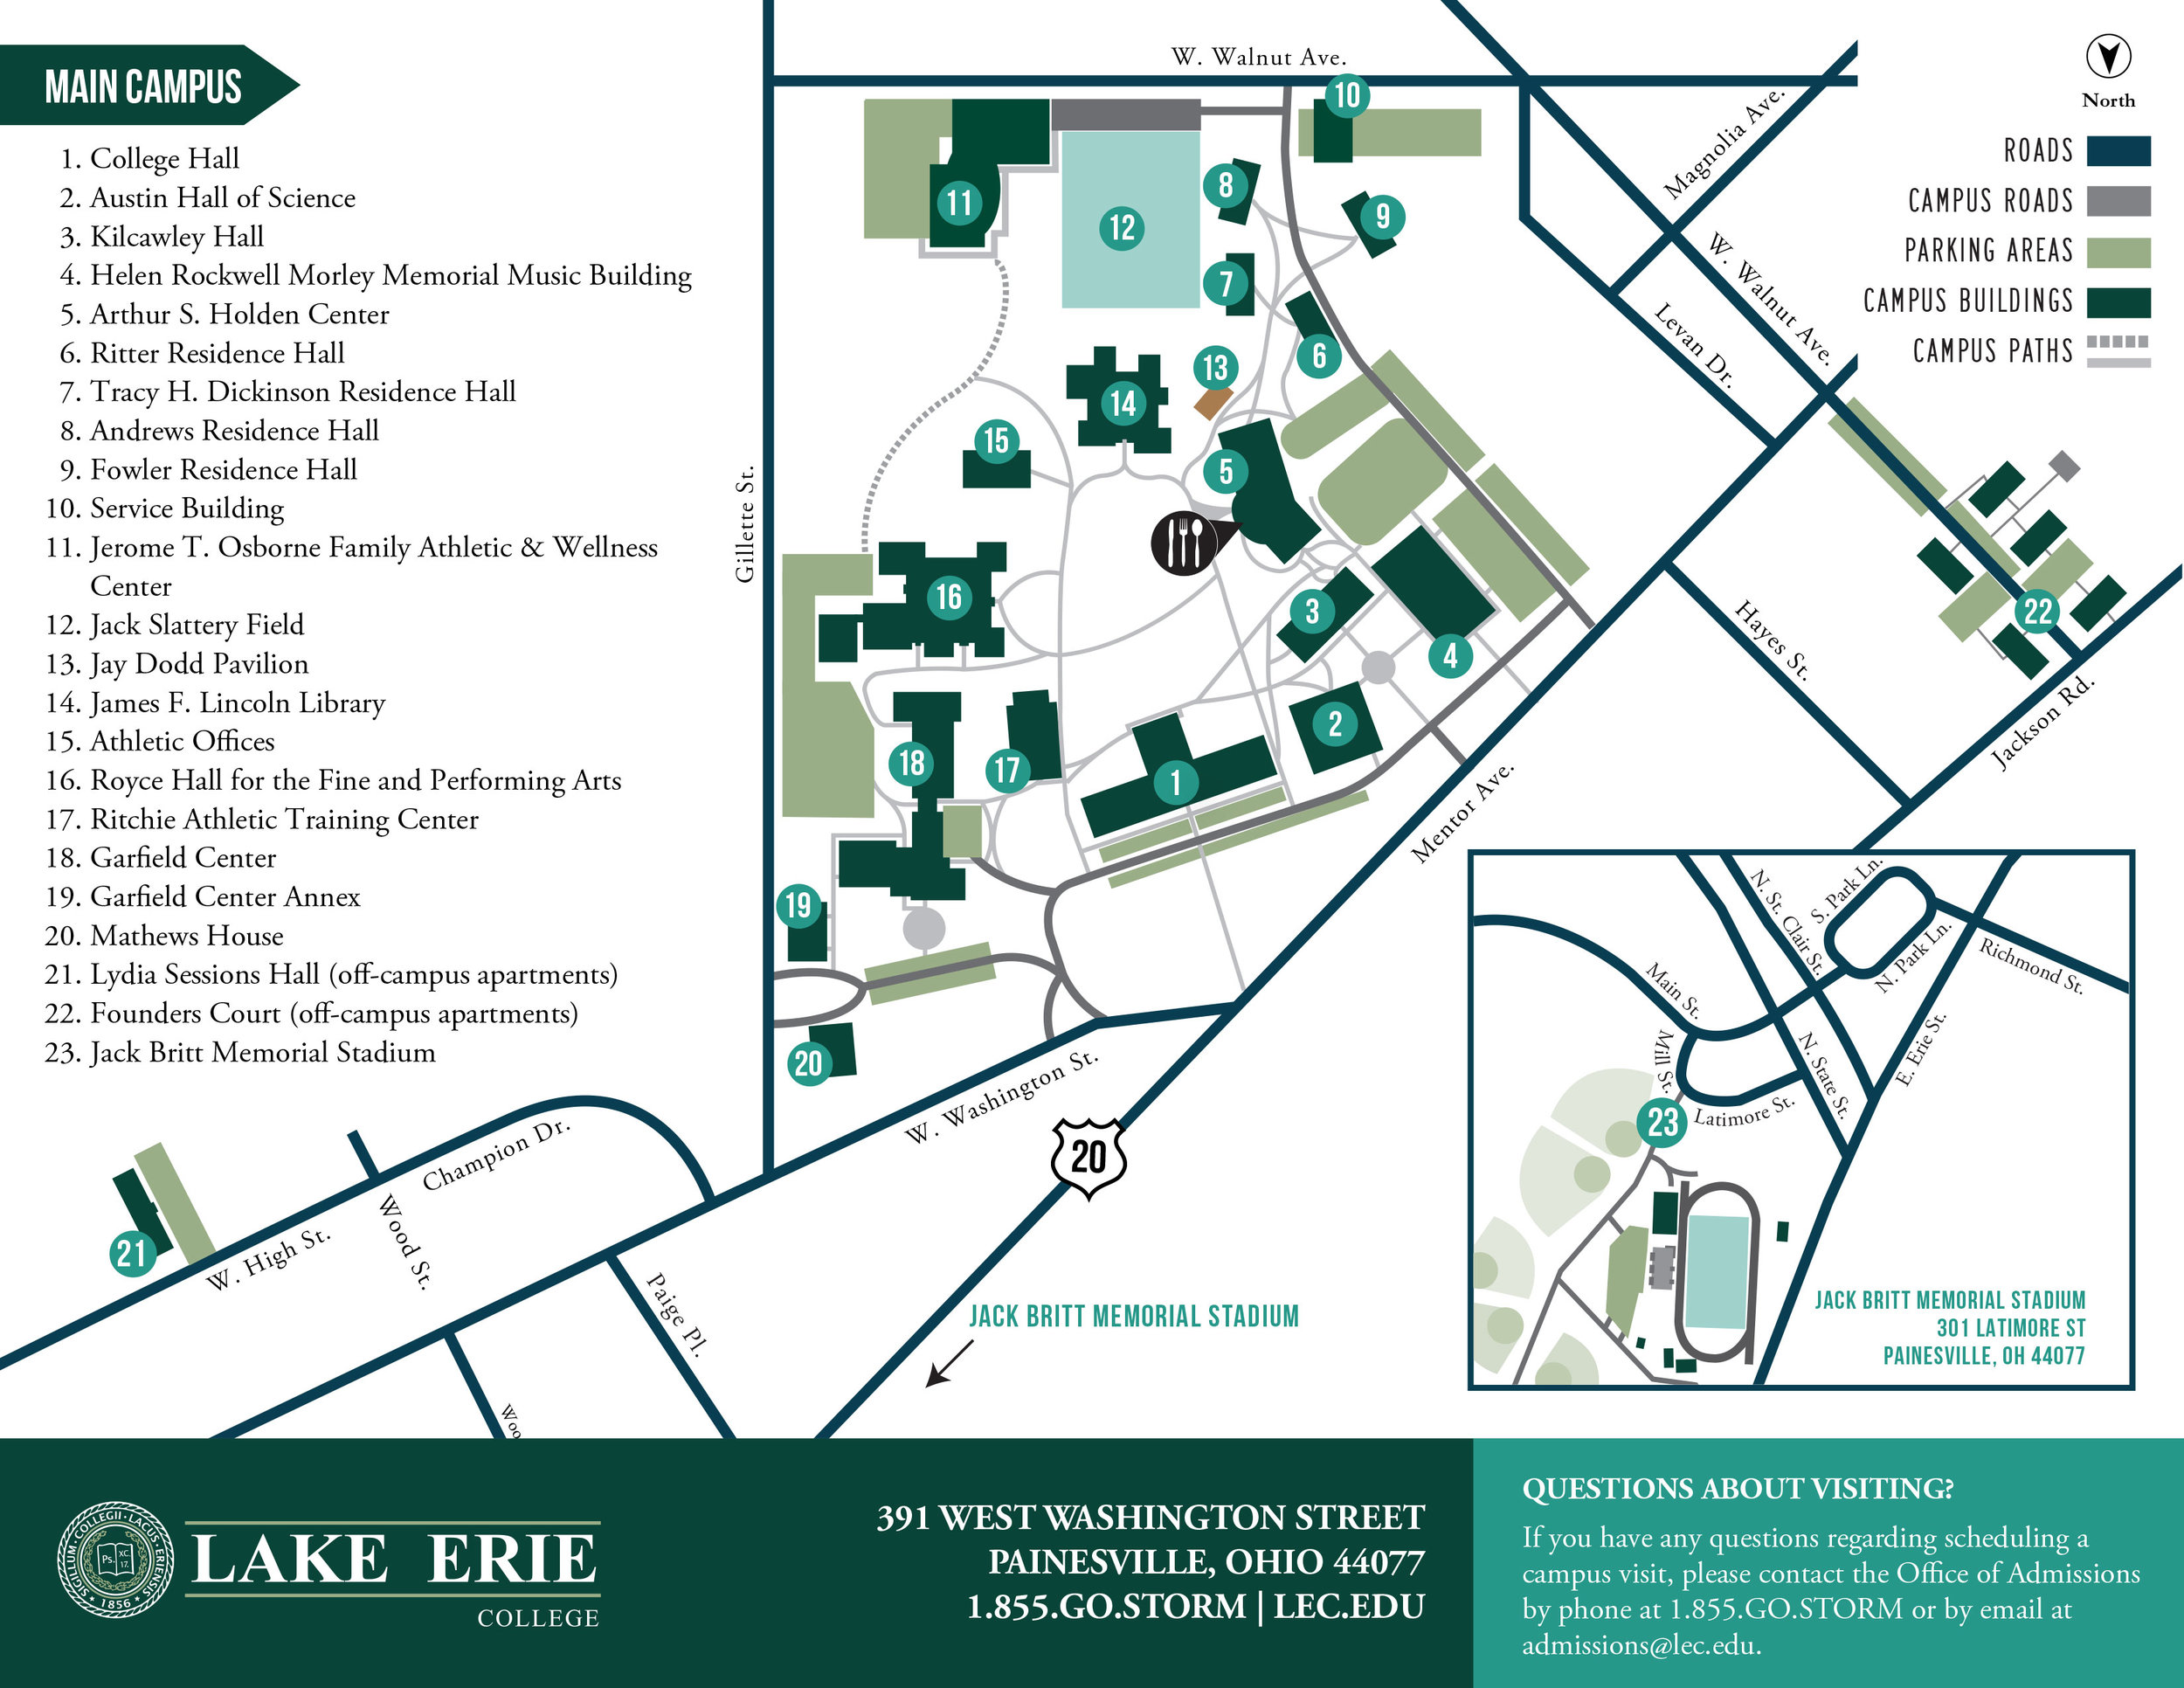 Sessions will take place in room C16 of the Garfield Center. Parking is located off Gillette Street.